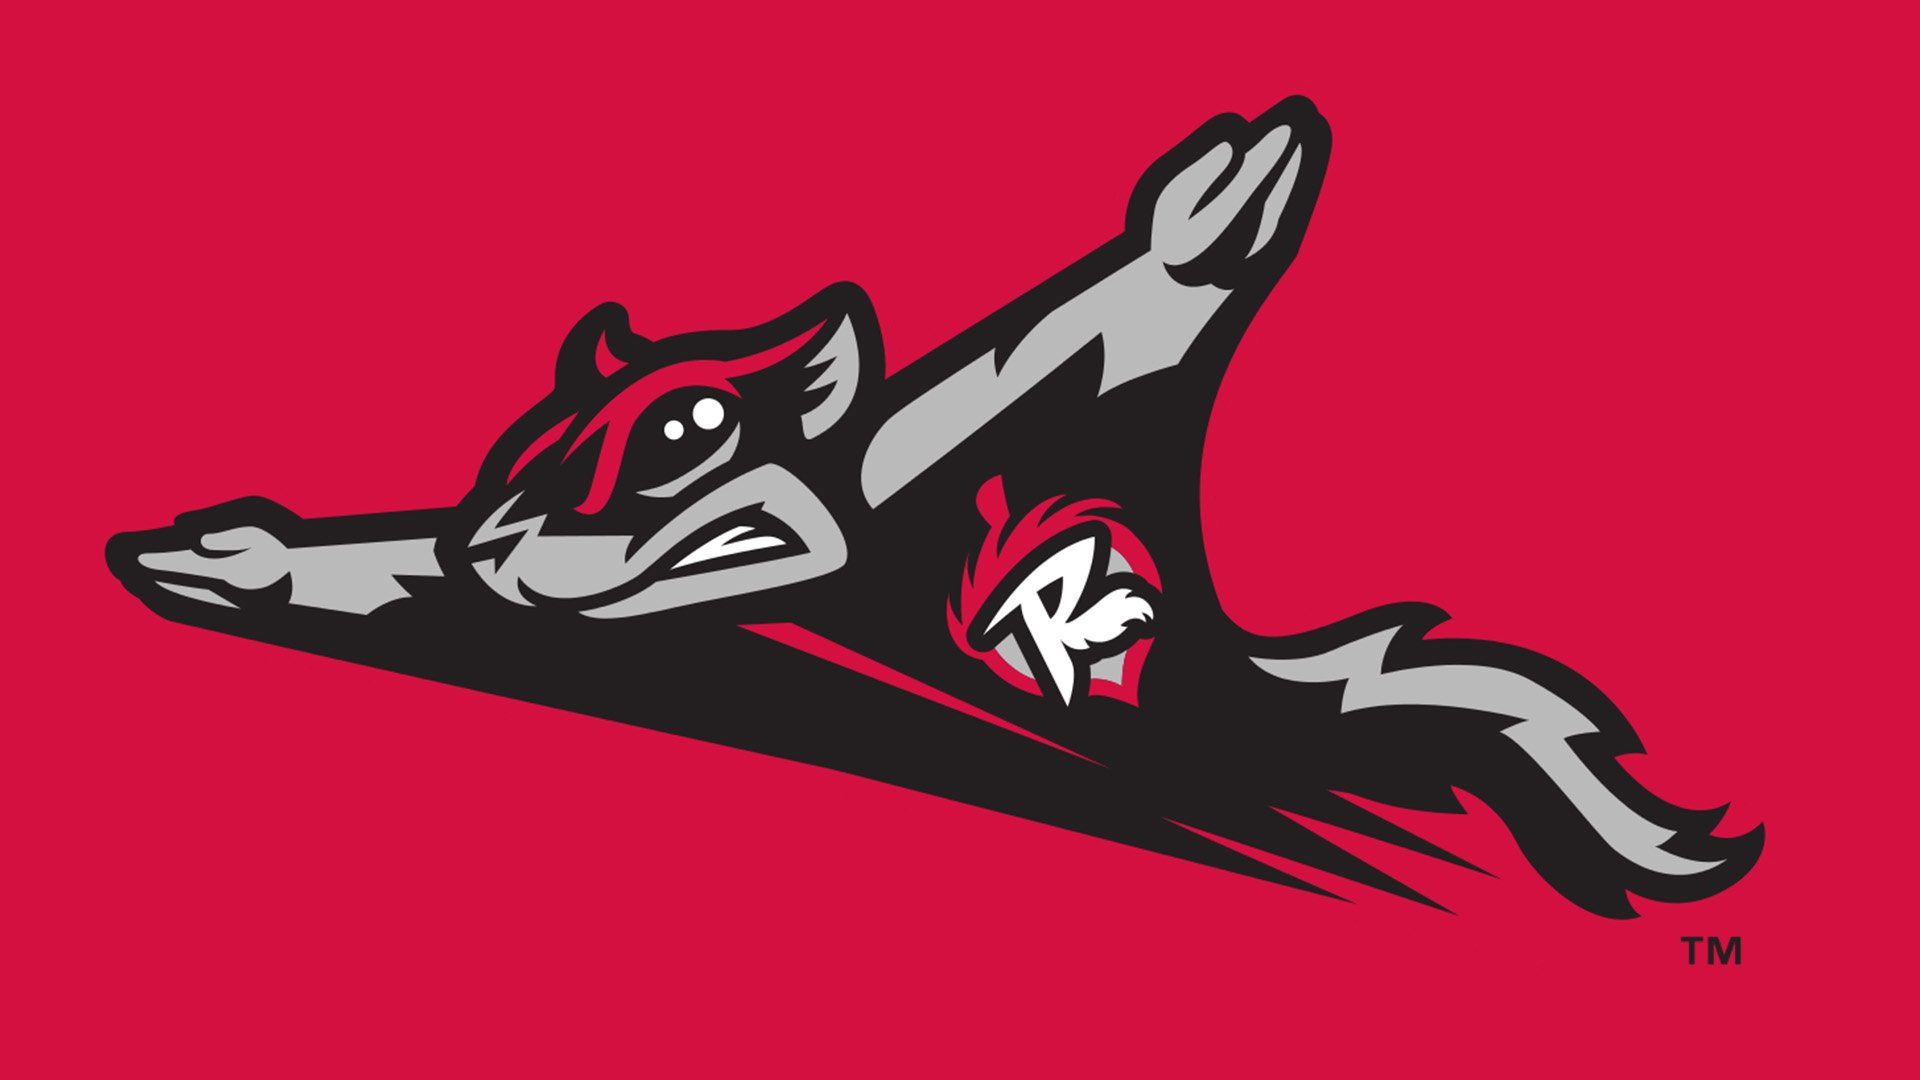 Meaning Richmond Flying Squirrels logo and symbol | history